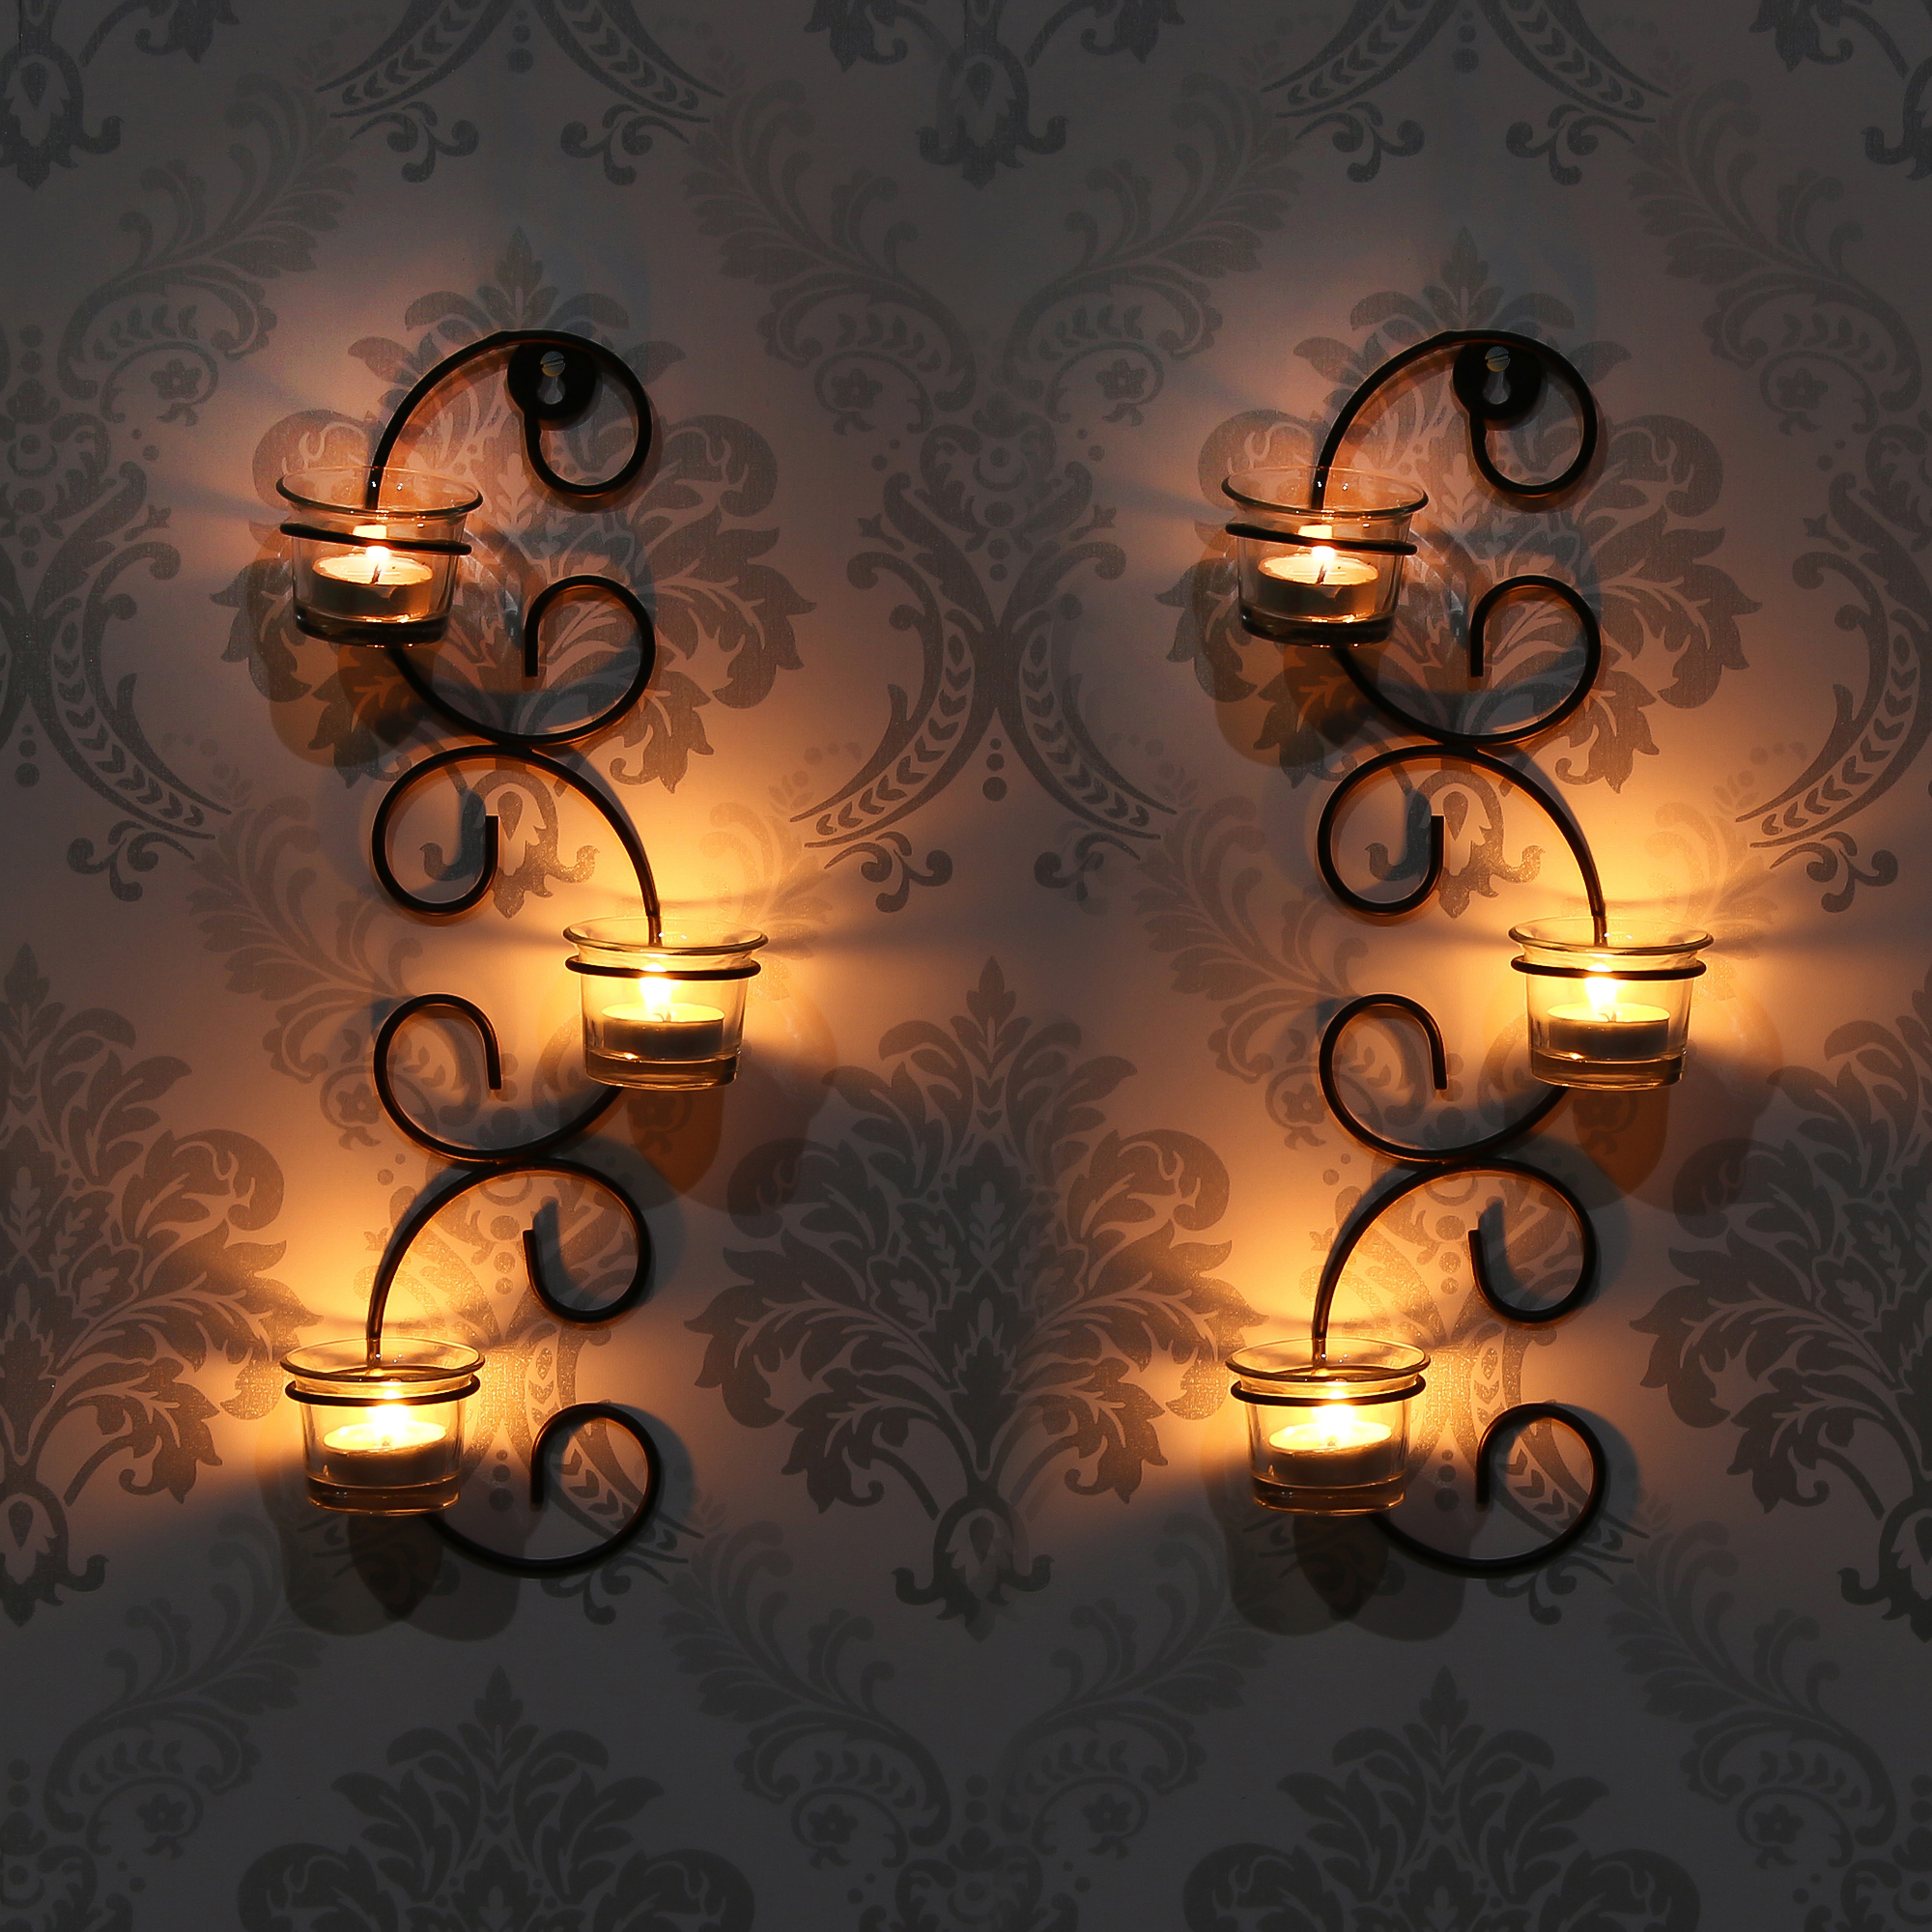 Set of 2 Wall sconces with 6 Glass Cup Tea Light Holder Indian Home Decor